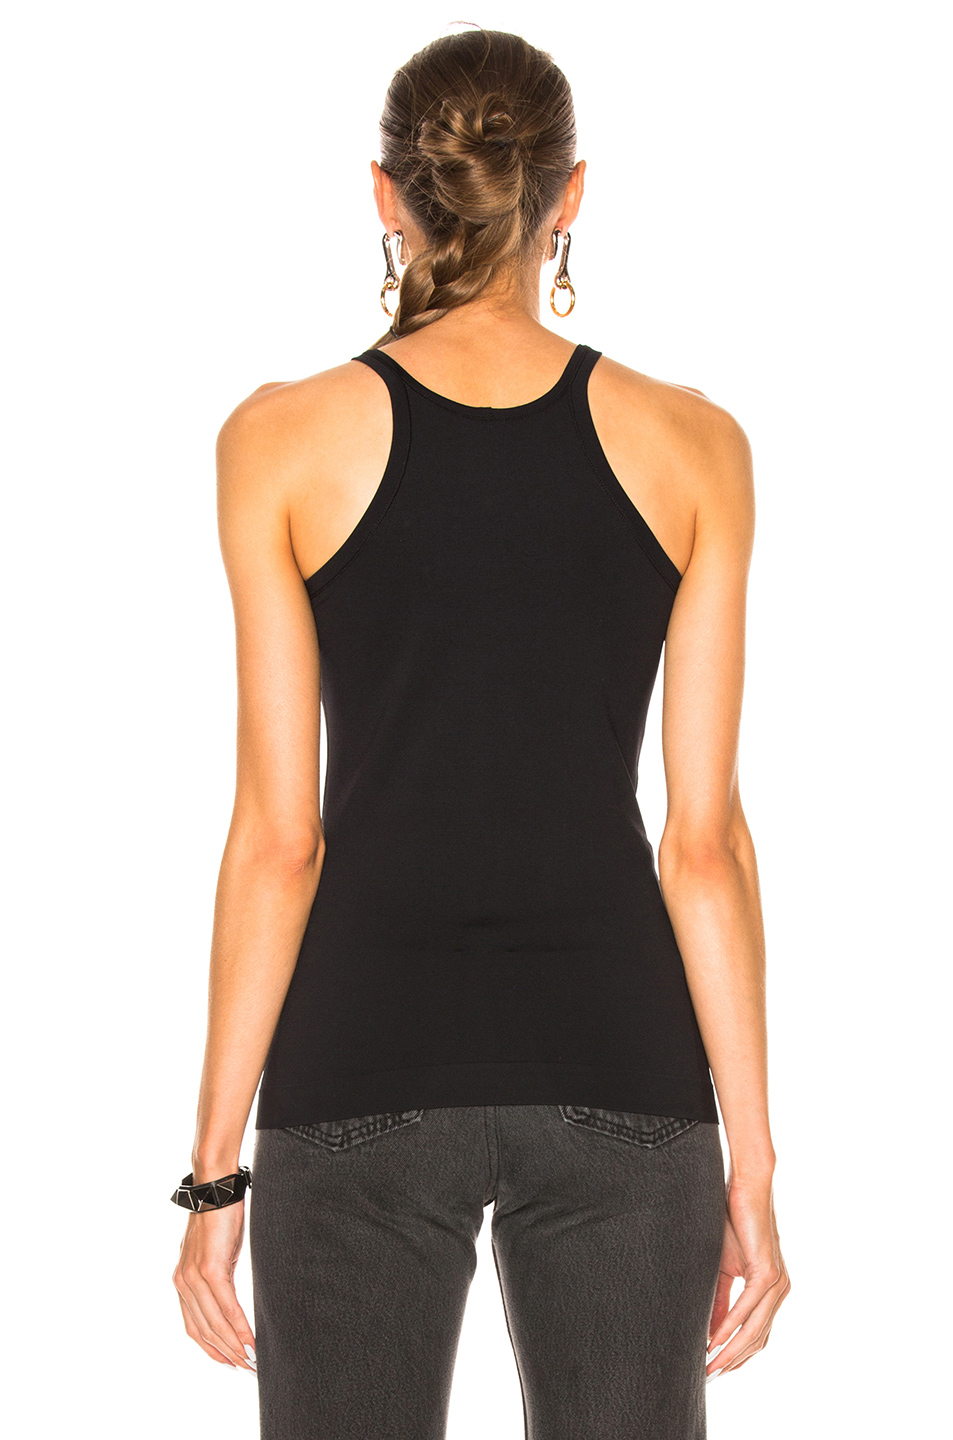 c481c1db237f3 Buy Original Helmut Lang Racer Front Tank Top at Indonesia